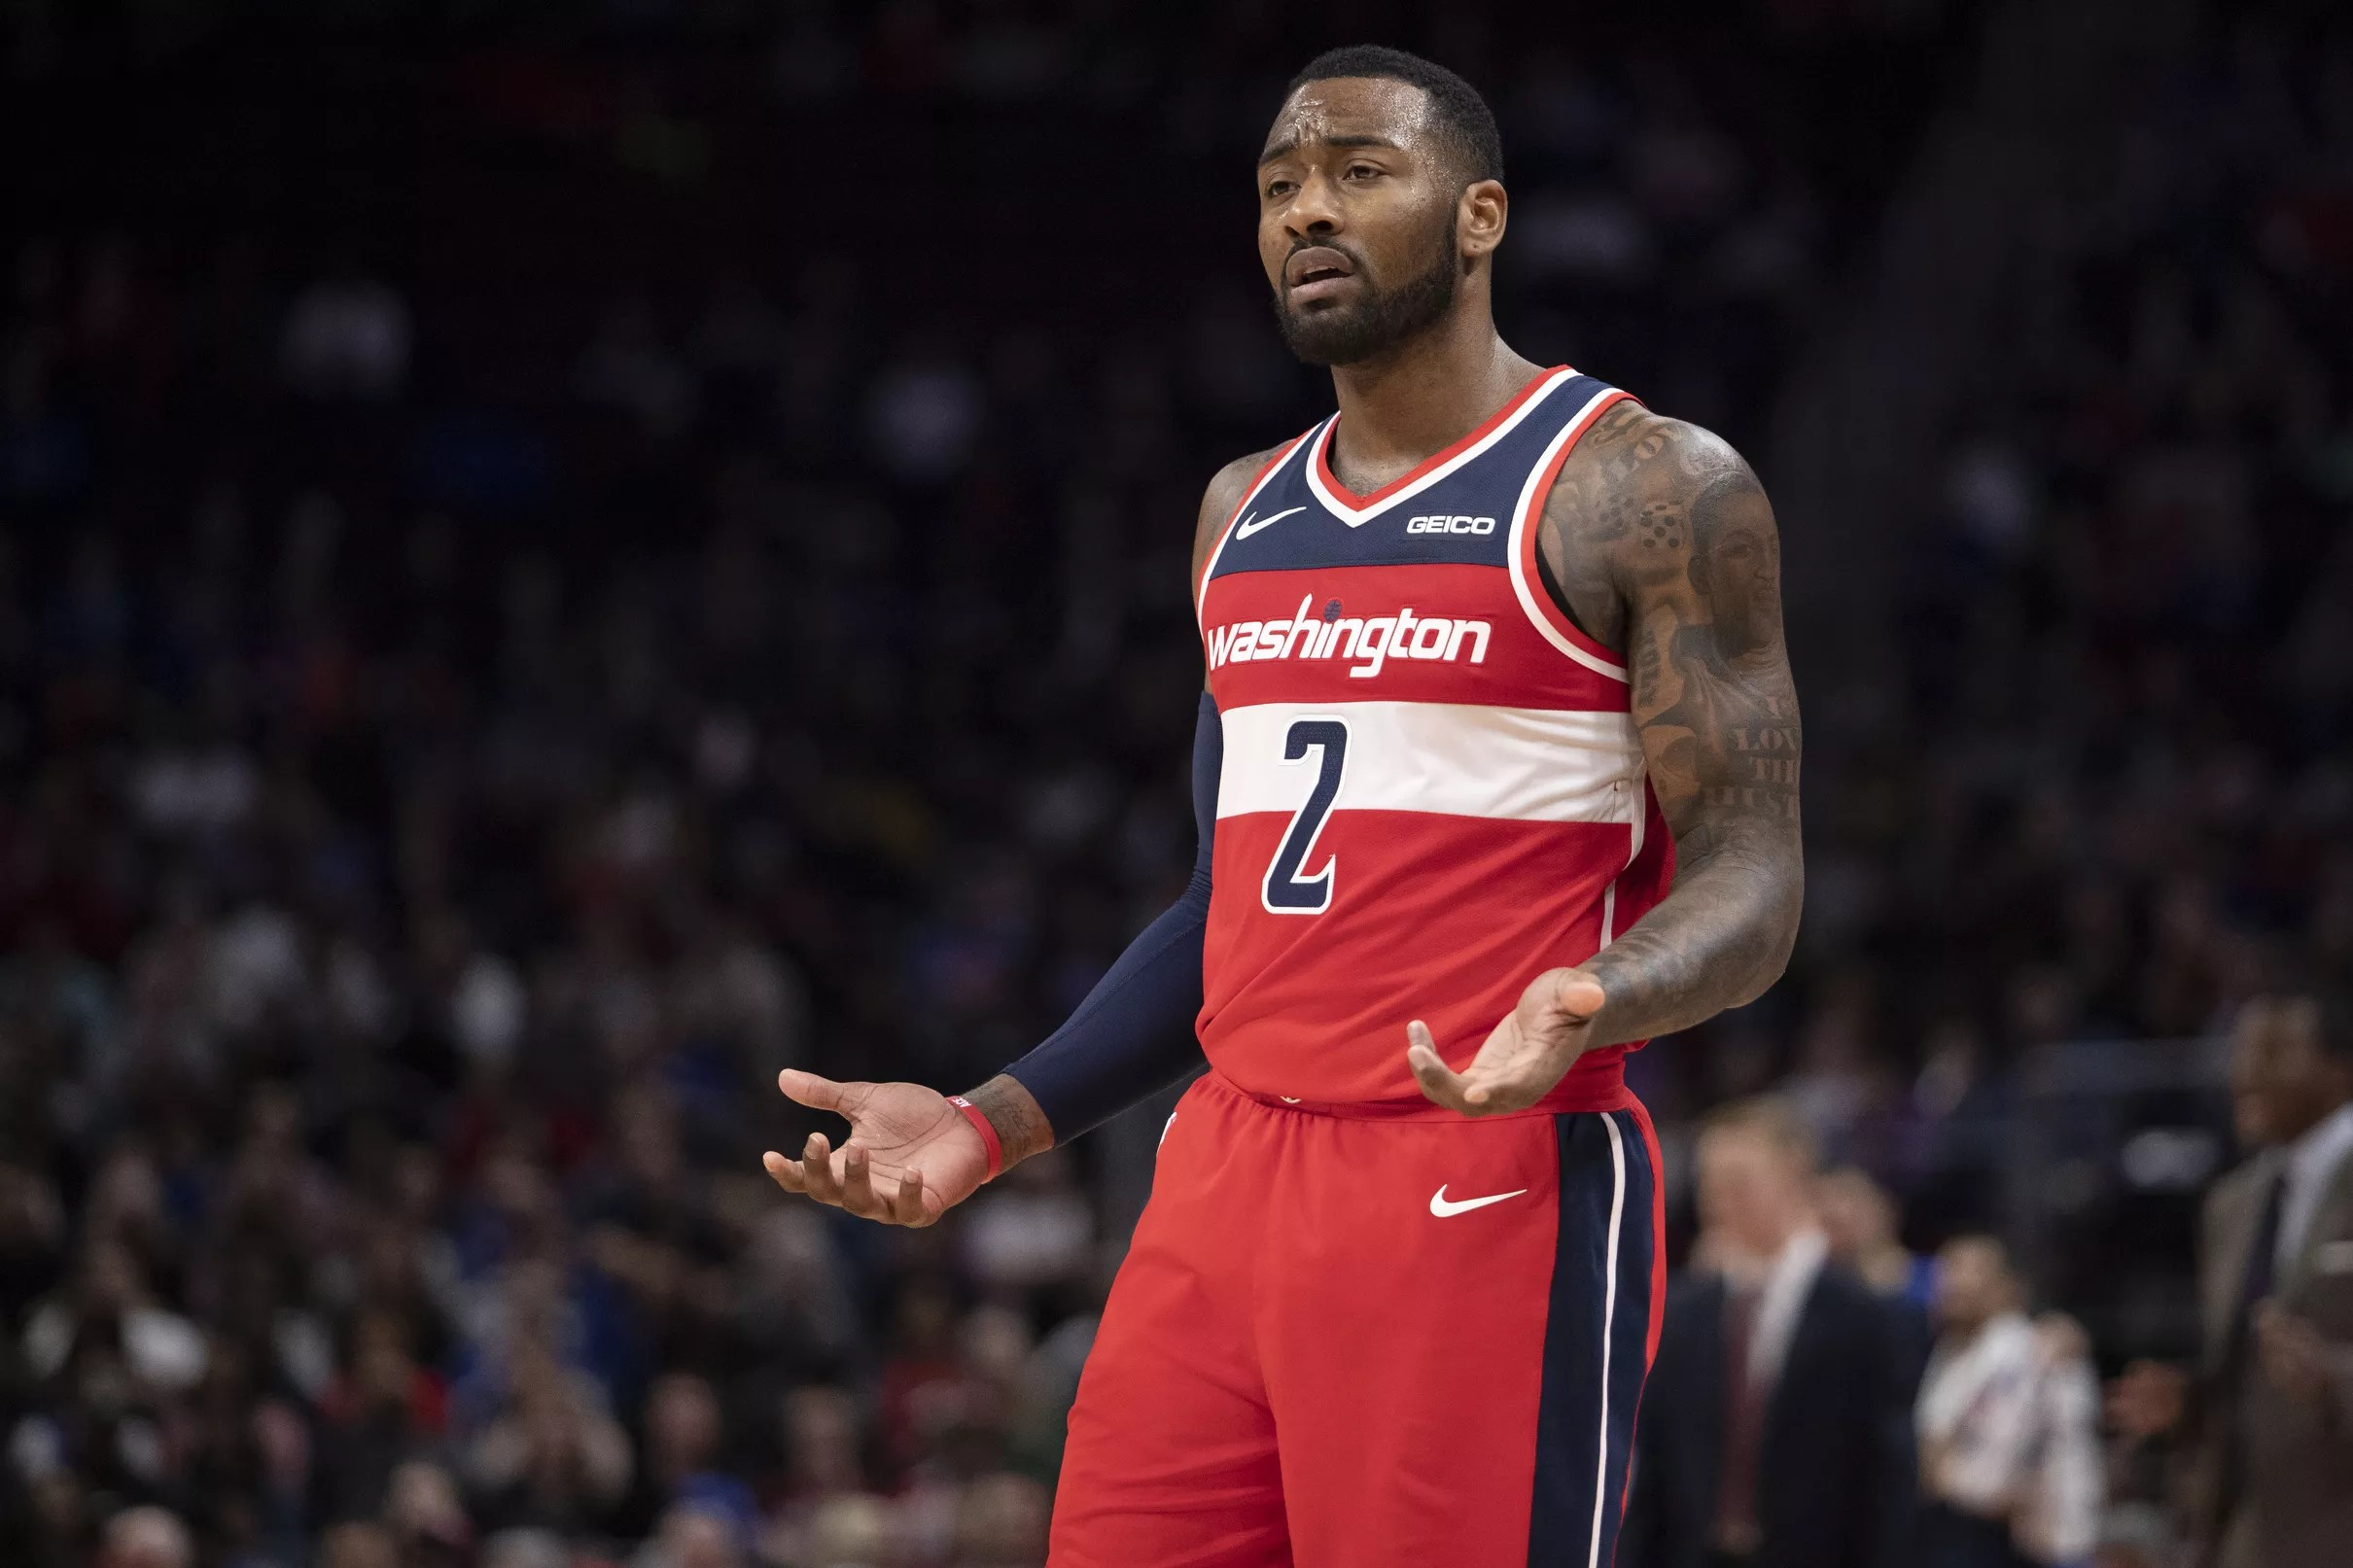 What should the Wizards do now that John Wall's Achilles is torn?